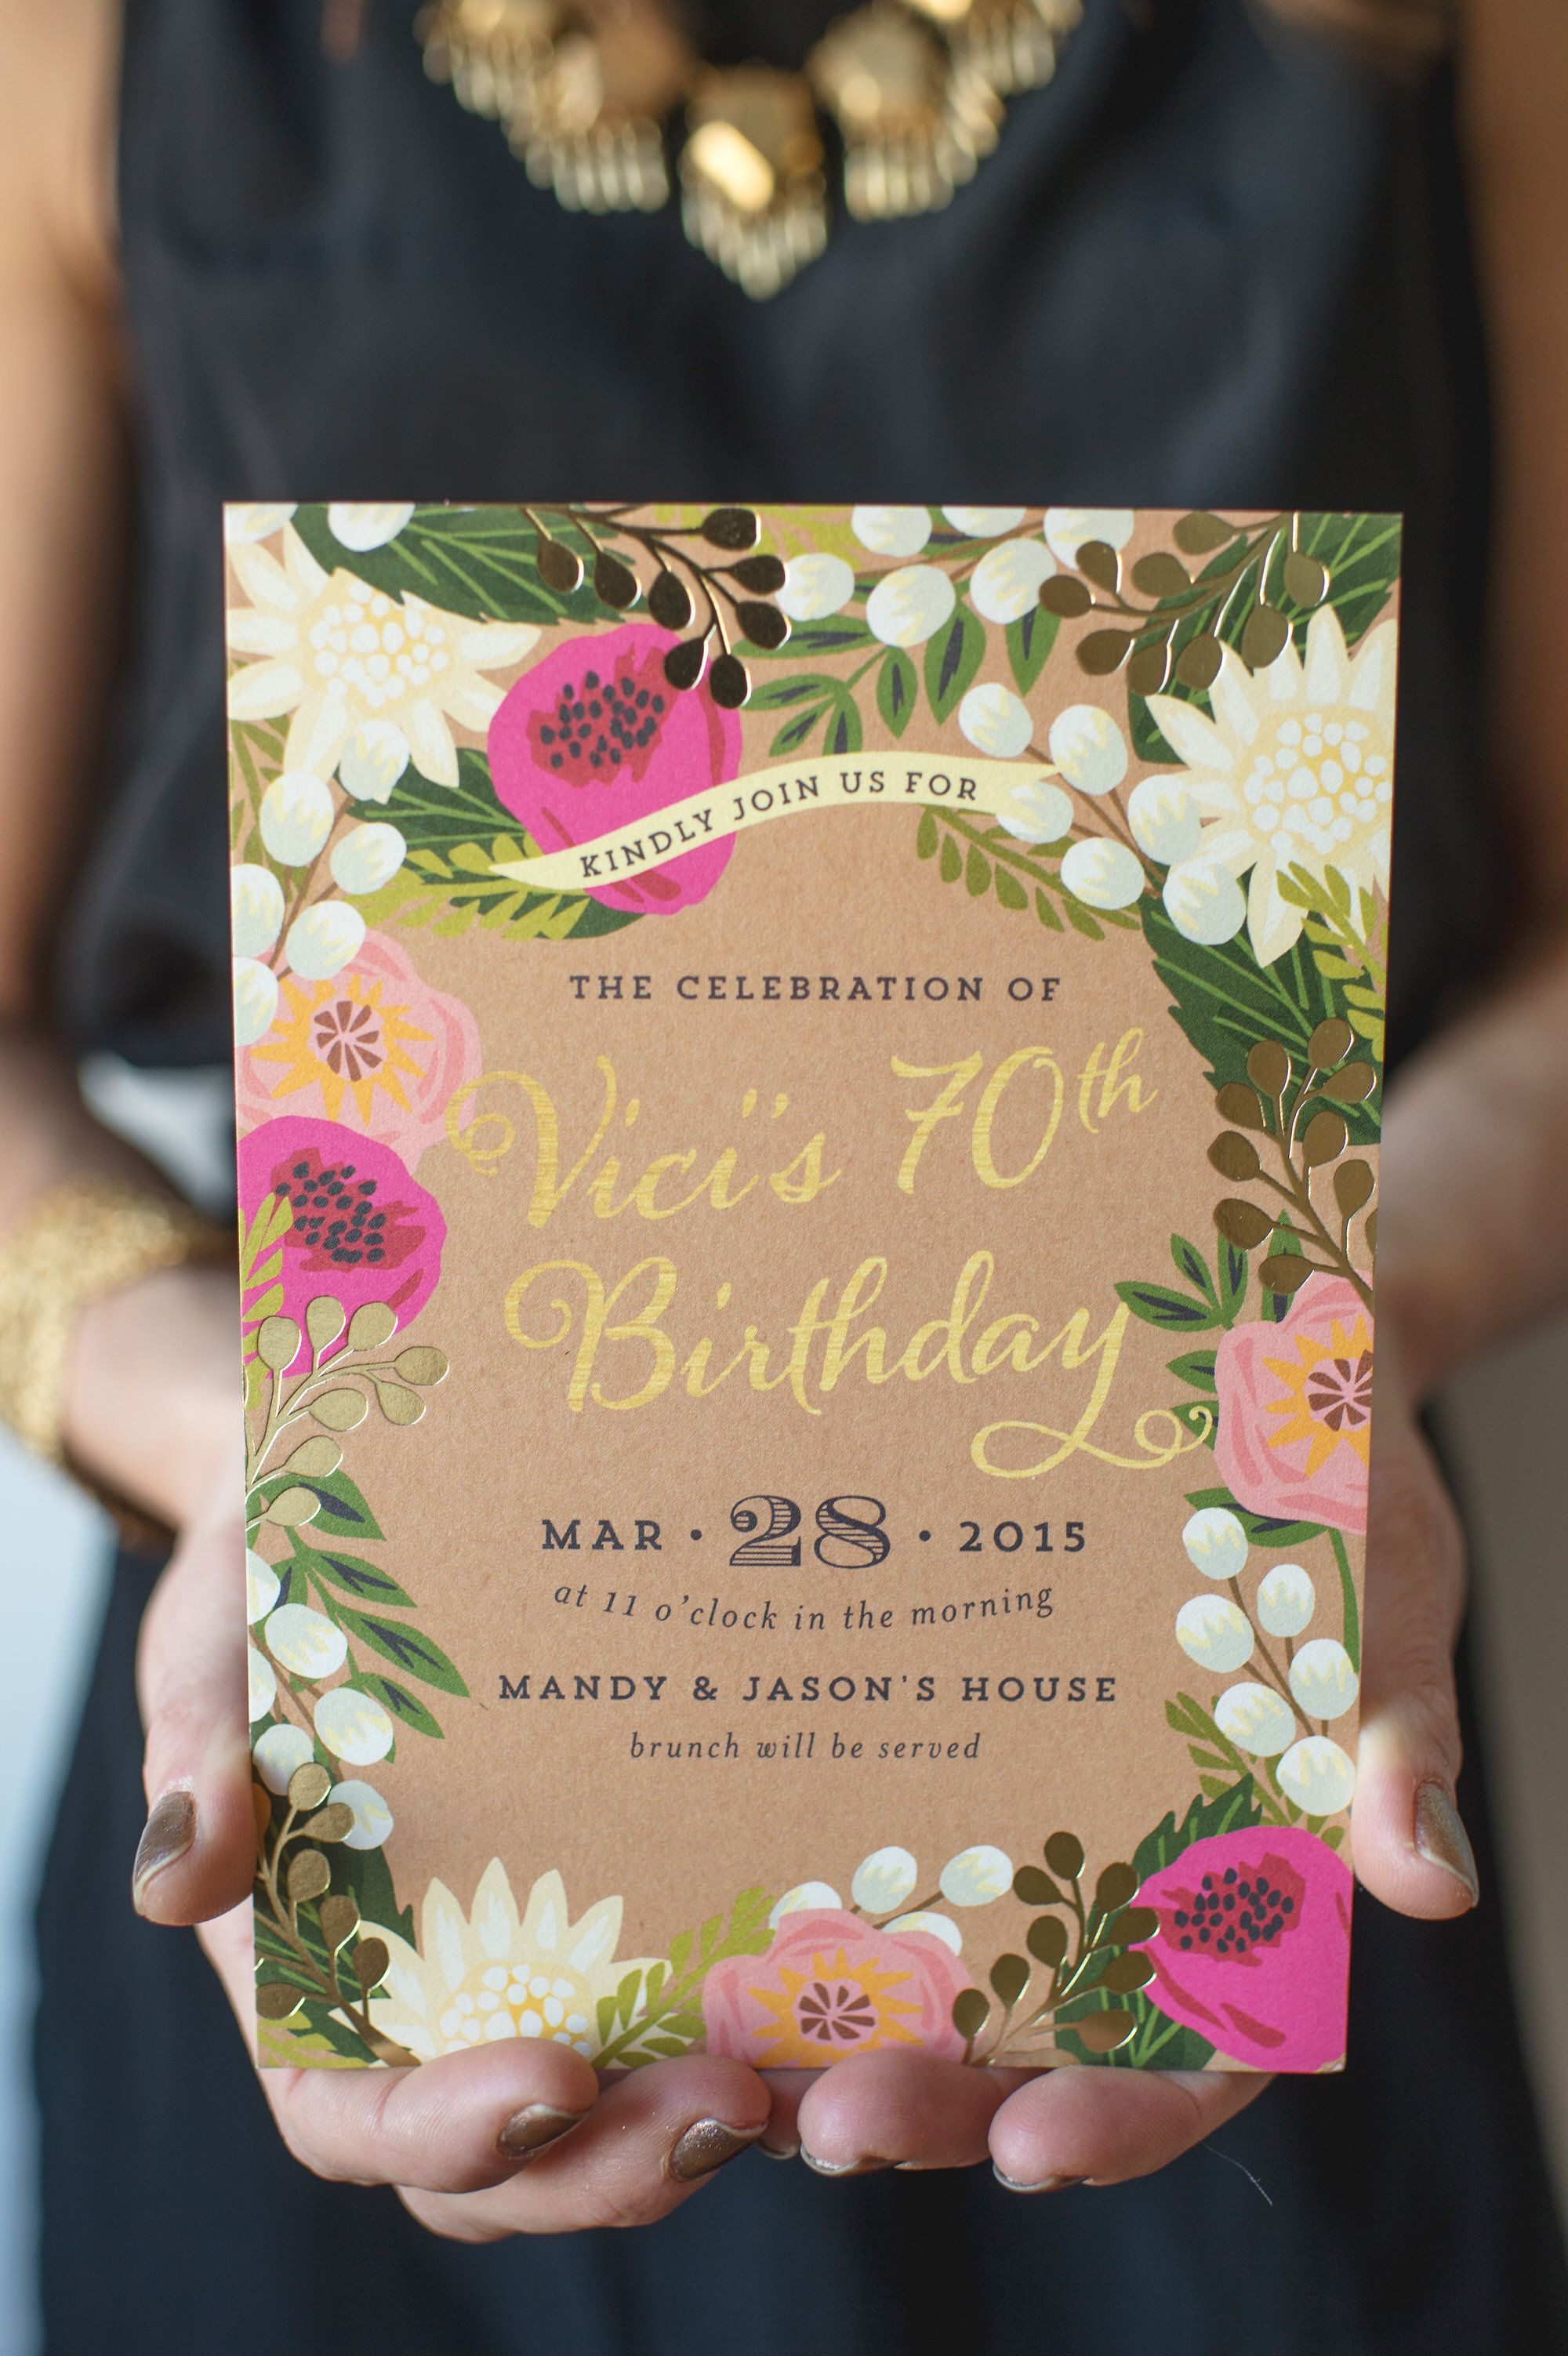 bday party invitation mail%0A A Whimsical and Intimate Garden Brunch